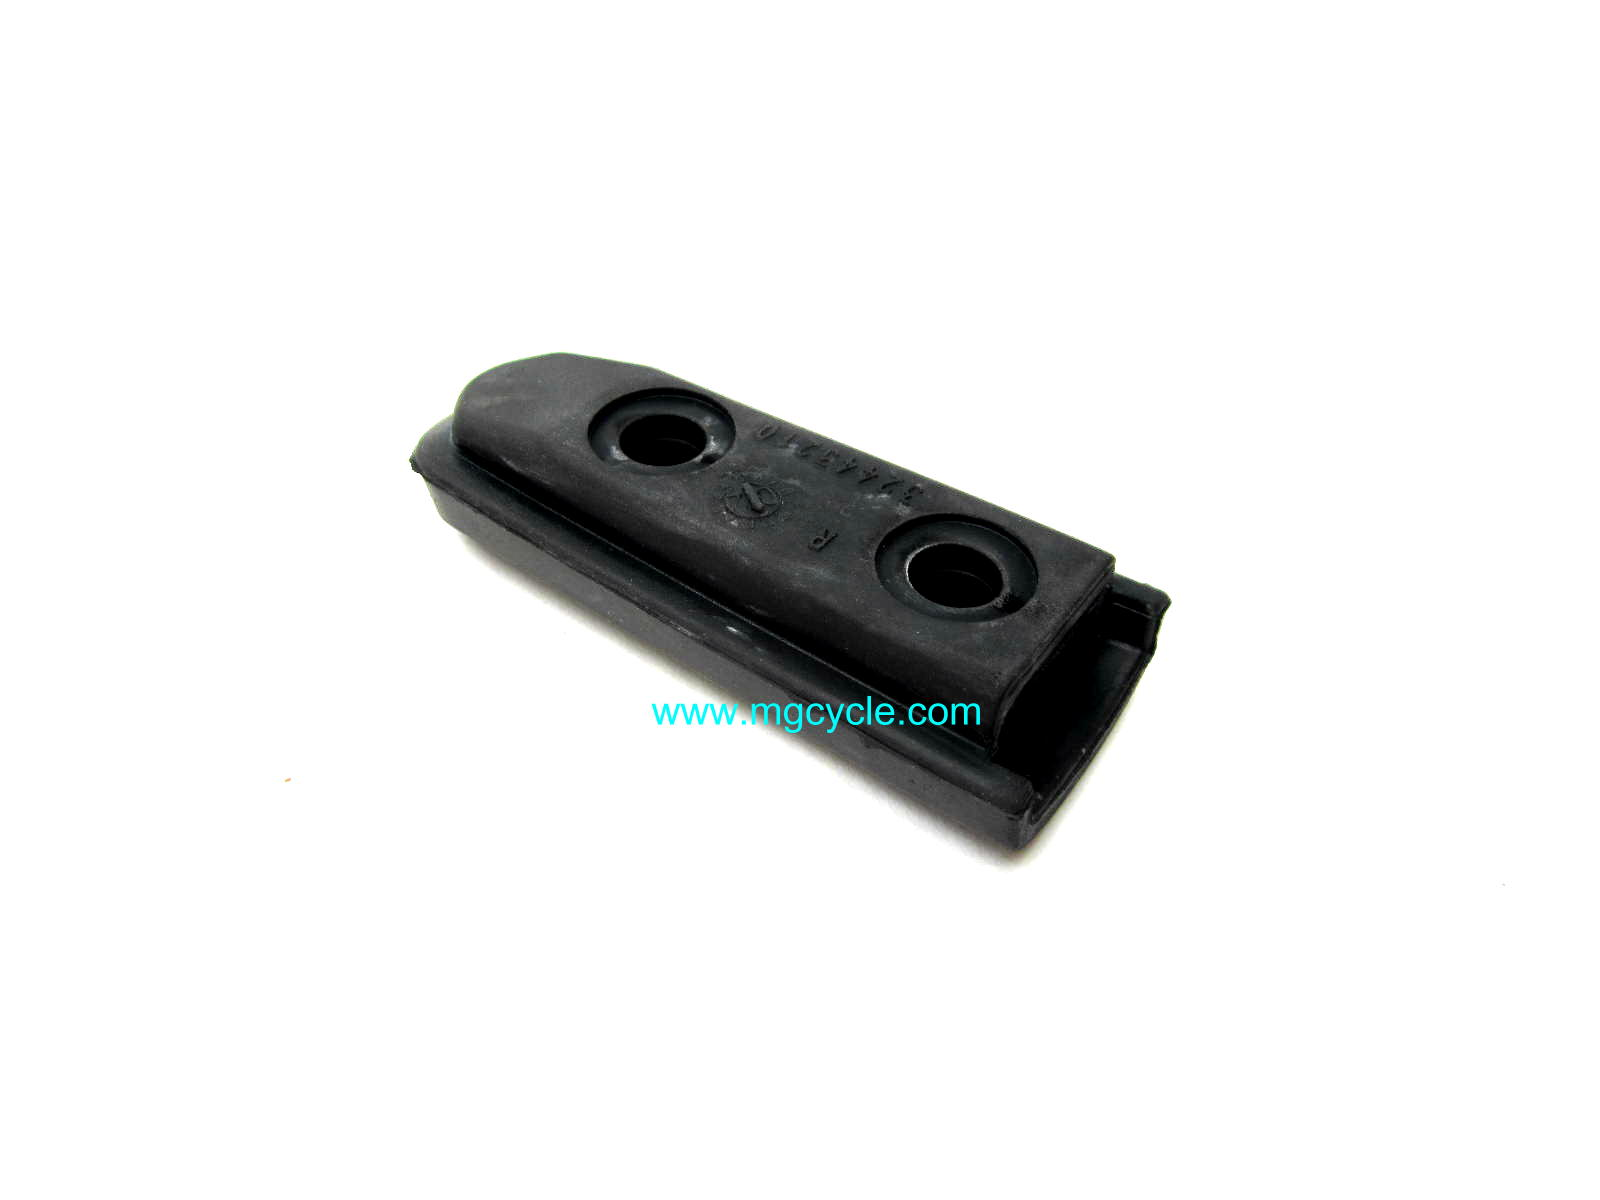 Foot peg rubber many models 2003-2016 right side GU32443210